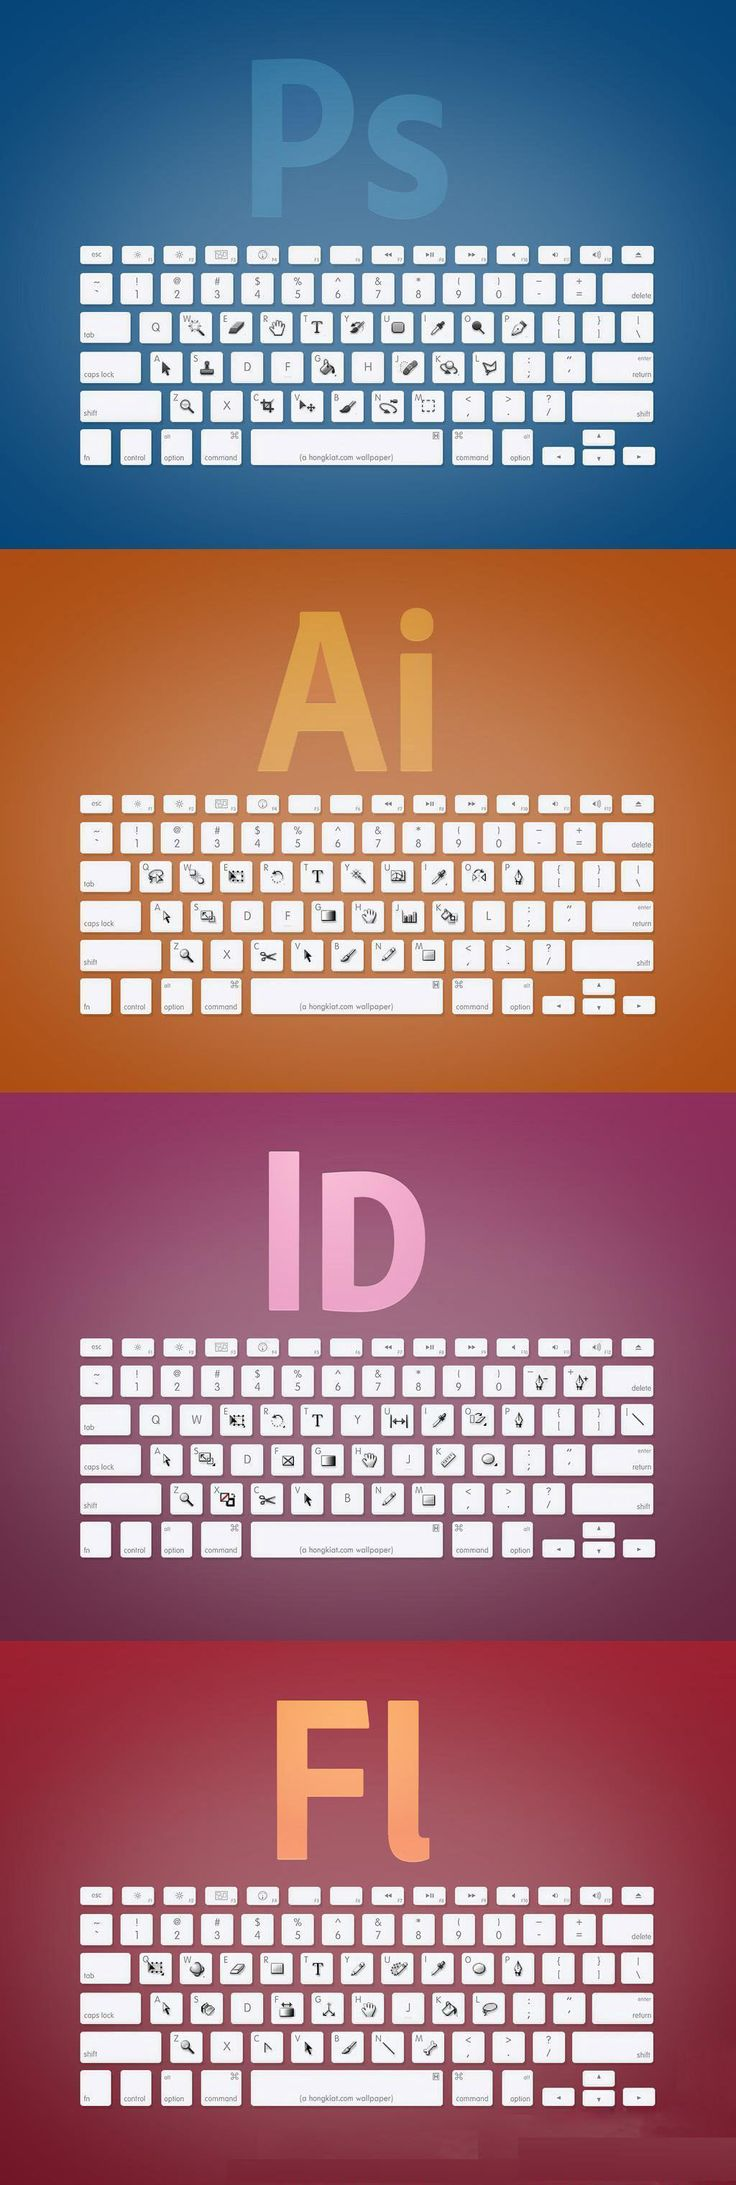 The infographic shows many of the key shortcuts that Adobe has developed for their programs. These shortcuts are ones that everyone should learn while using these programs. Shortcuts are a way to cut back on tame wasted doing tasks and allow students to focus on other, more important, tasks and learning tools. These info graphics will probably end up in my classroom for everyone to see.